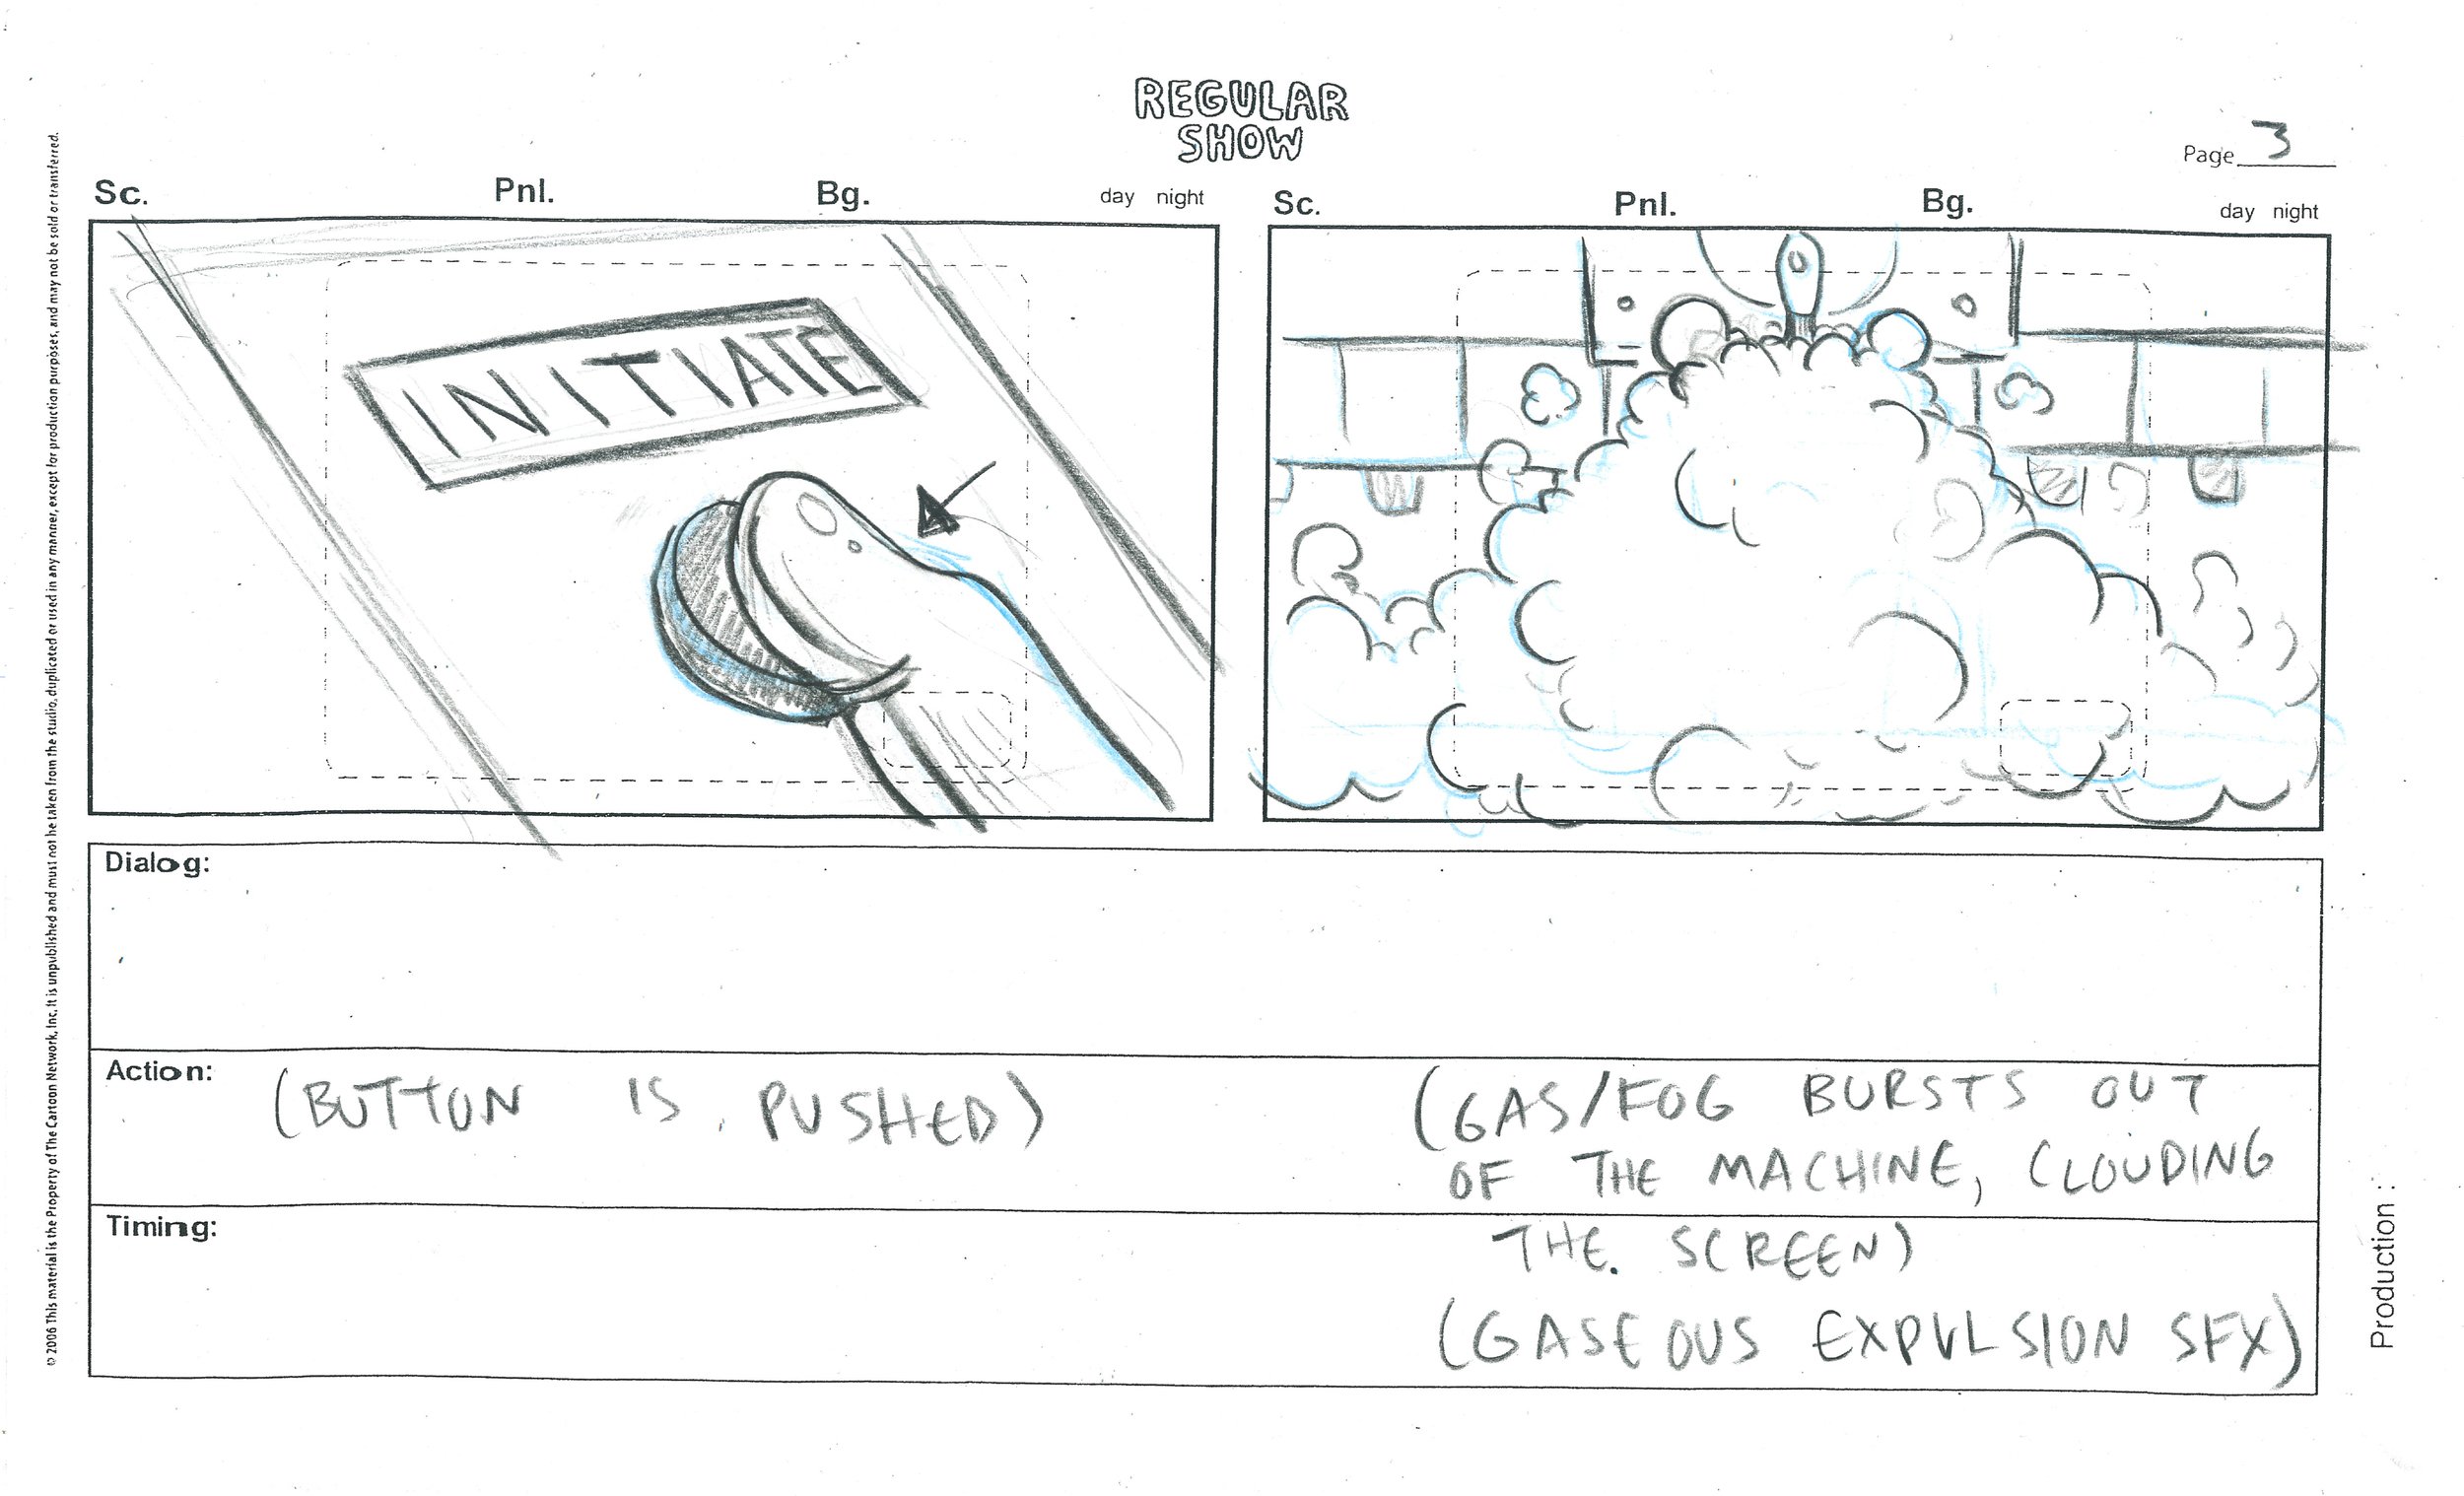 Finn-Gamino_REGULARSHOW_Storyboards (Panels 29-38)-3.jpg